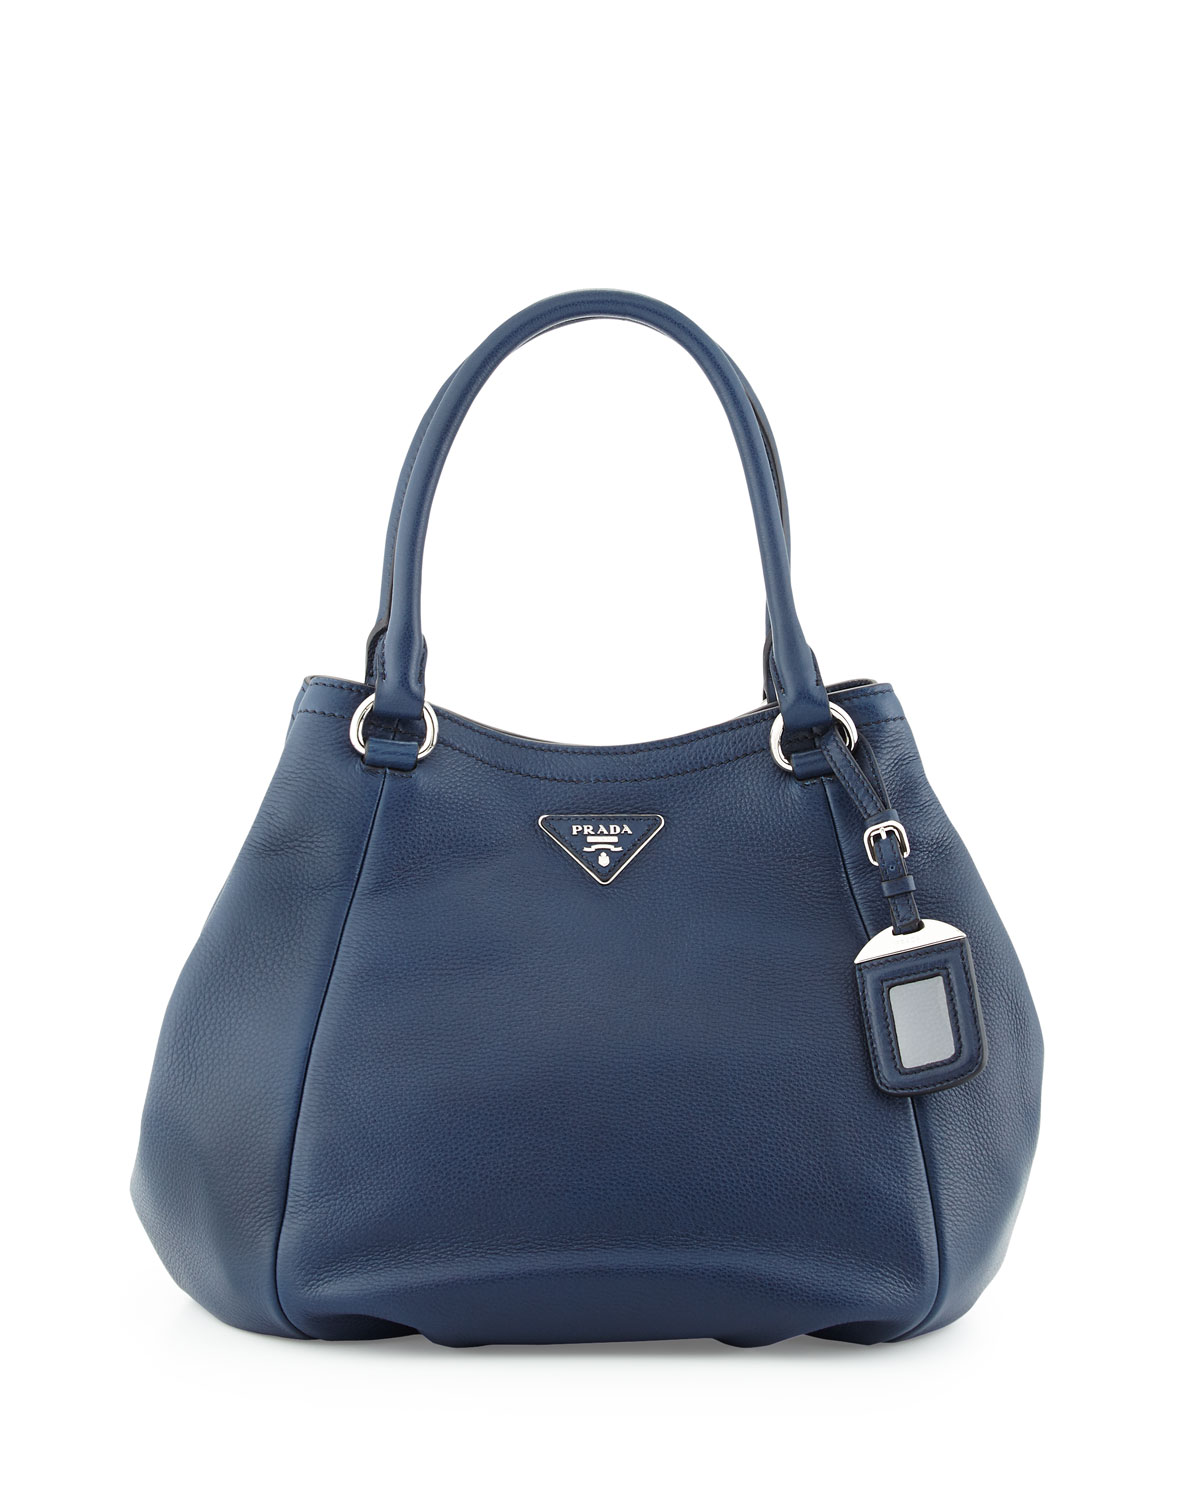 1204d43731a114 Prada Vitello Daino Small Satchel Bag, Navy (Baltico) | Neiman Marcus